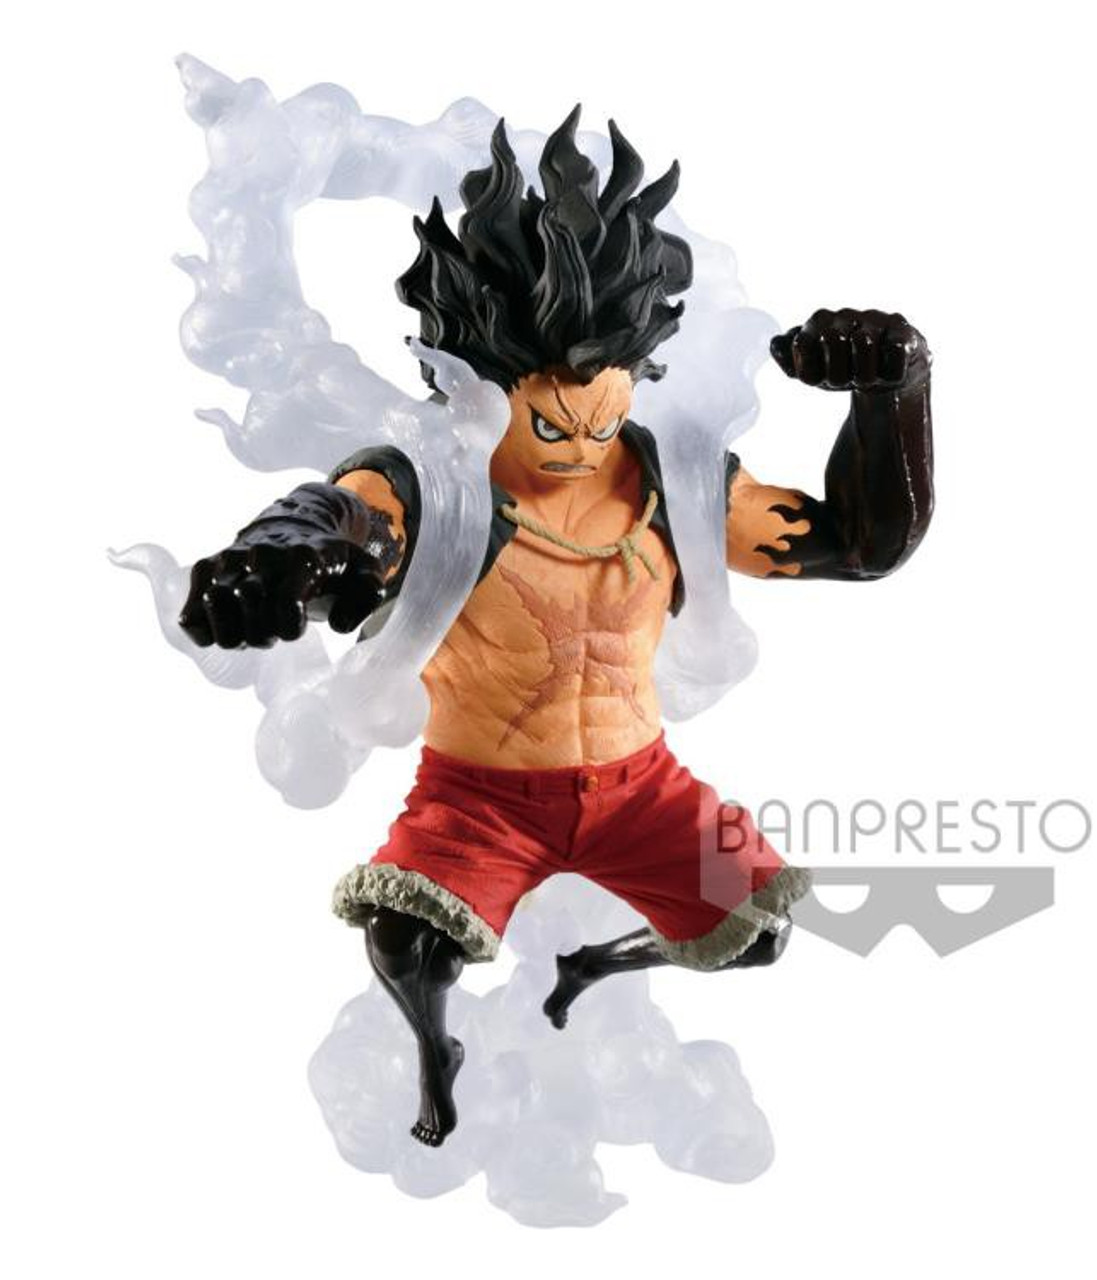 One Piece King Of The Artist Monkey D Luffy 5 5 Inch Collectible Pvc Figure Gear Fourth Snakeman